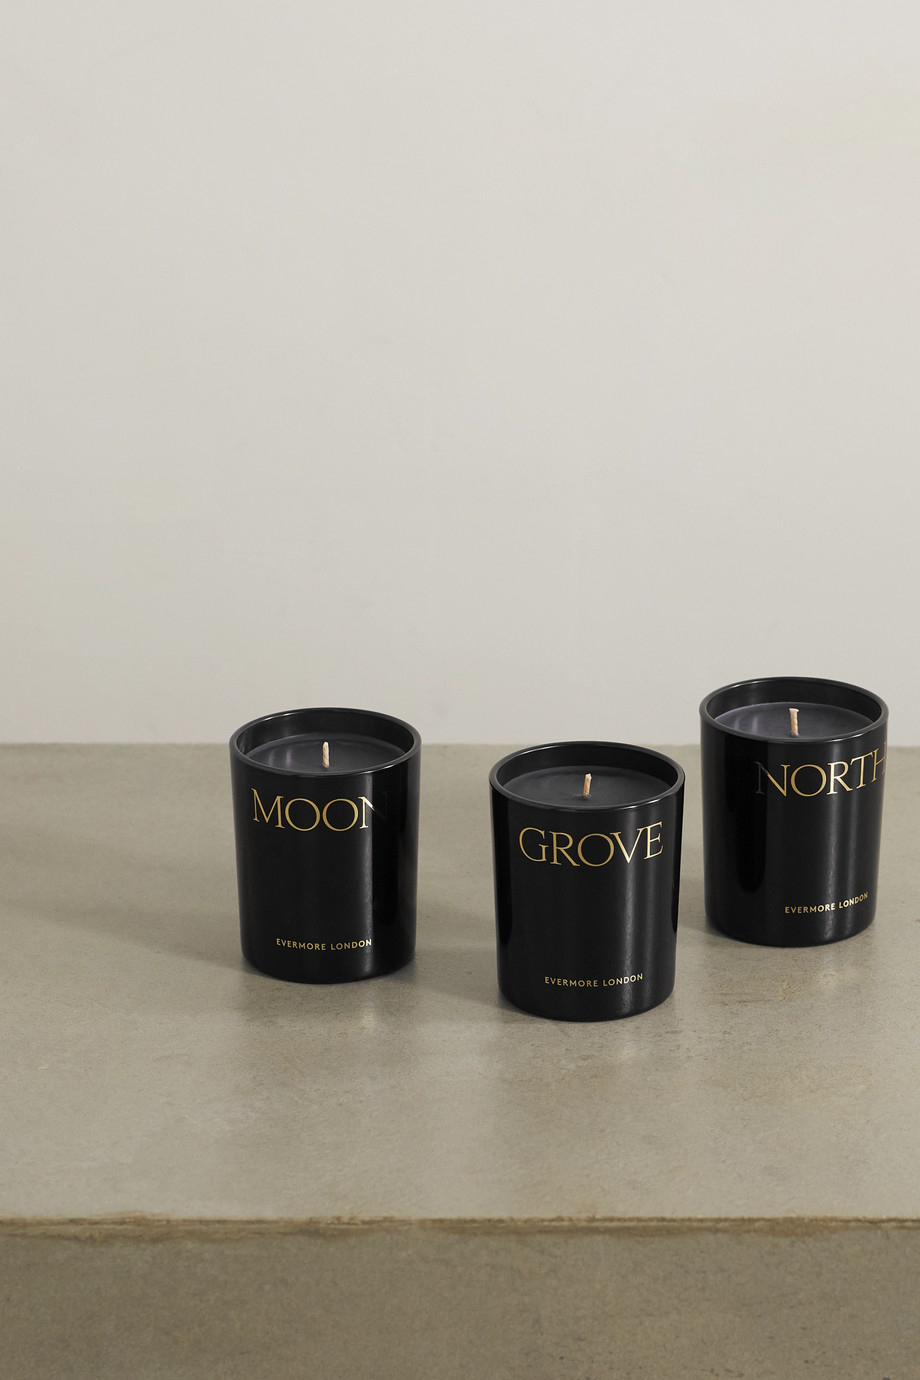 Evermore Nightfall scented candles, 3 x 145g